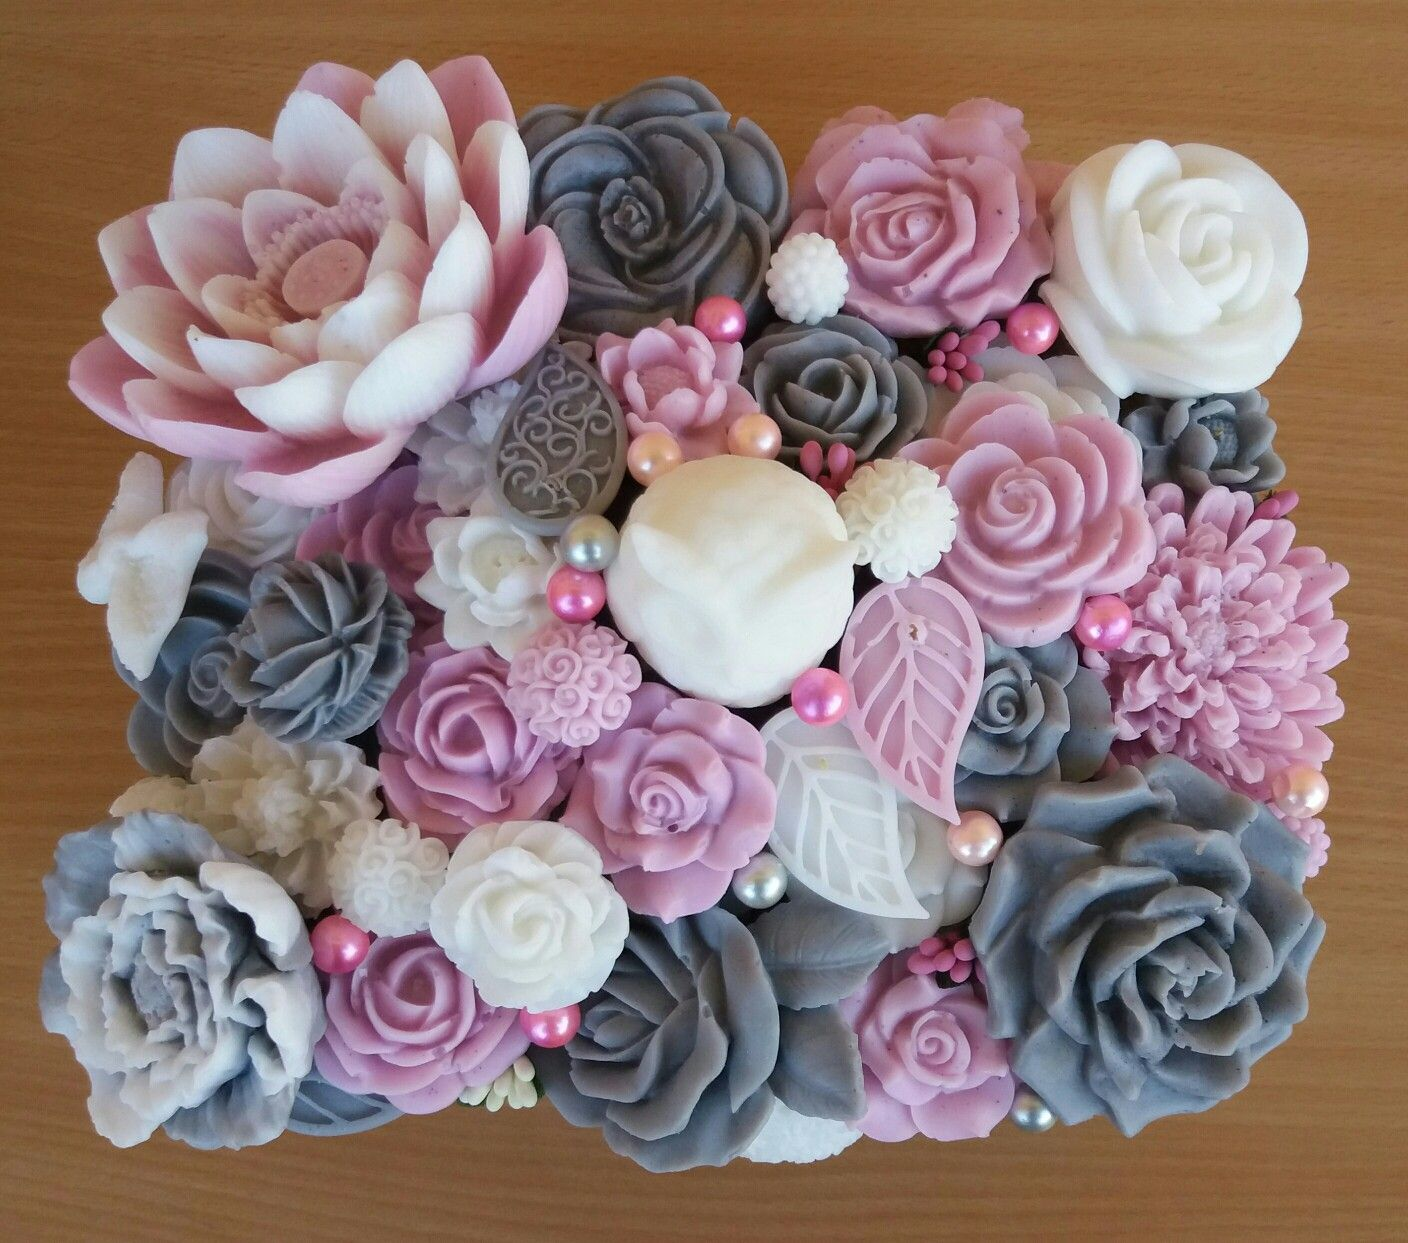 Pin by hangyi esta on art pinterest soap carving and knives